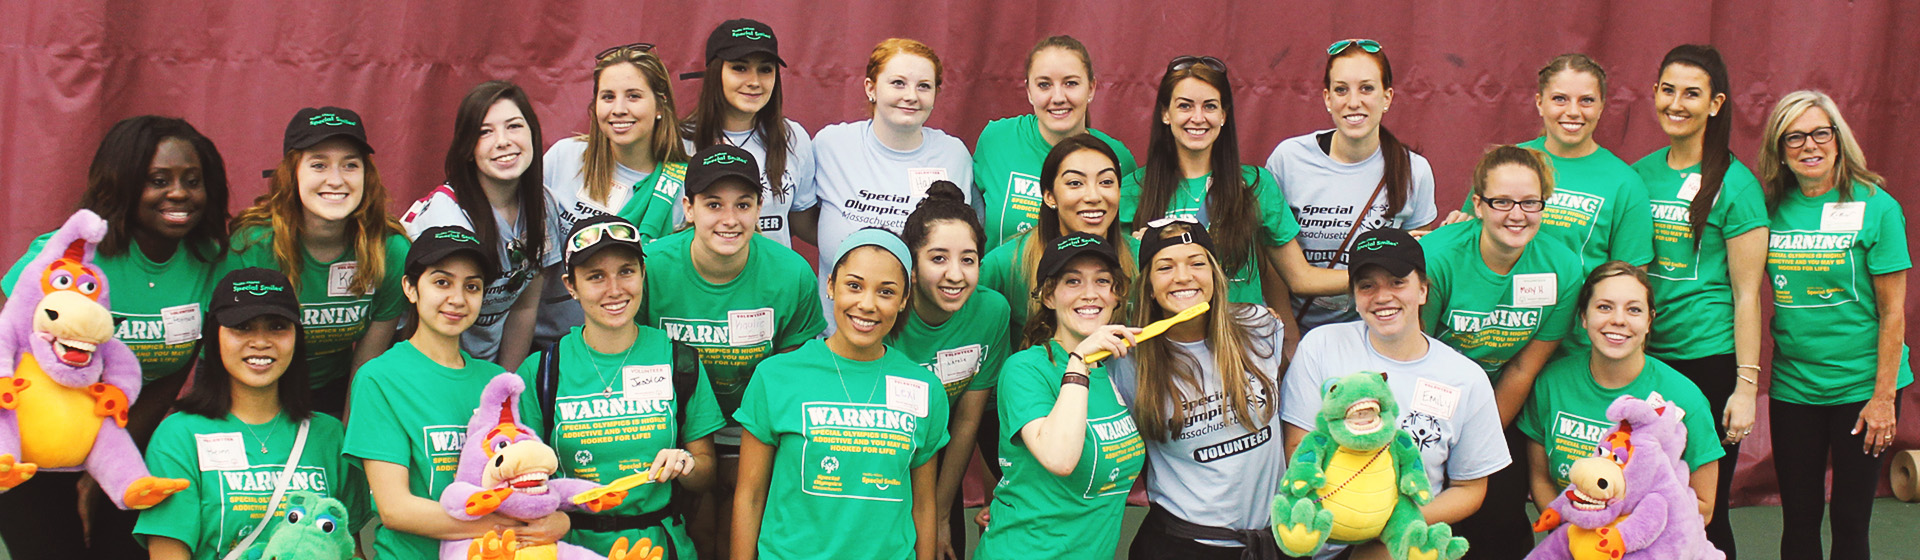 Special Smiles for Special Olympics Athletes